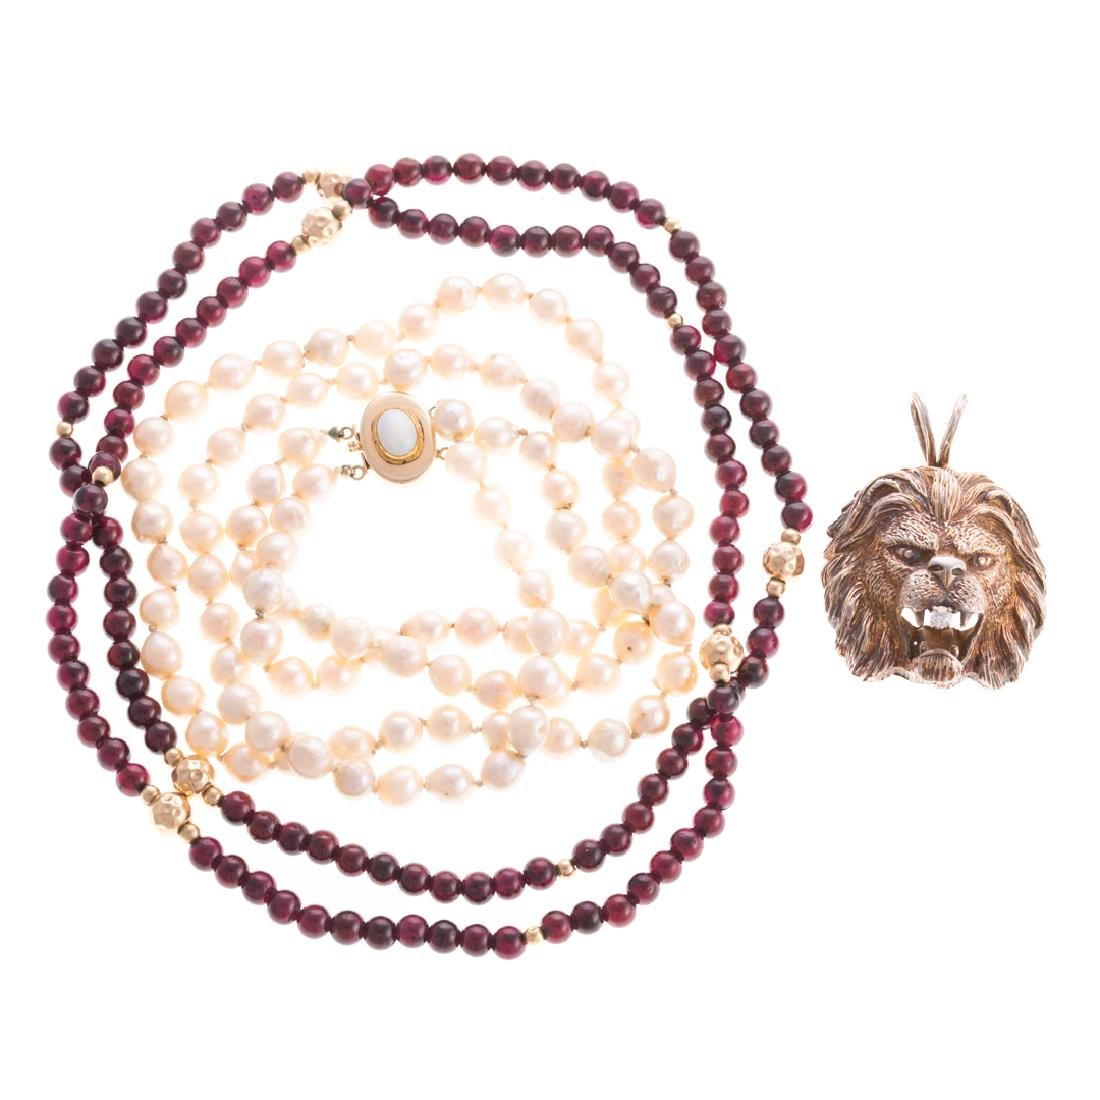 A Collection of Beads and Lion Pendant